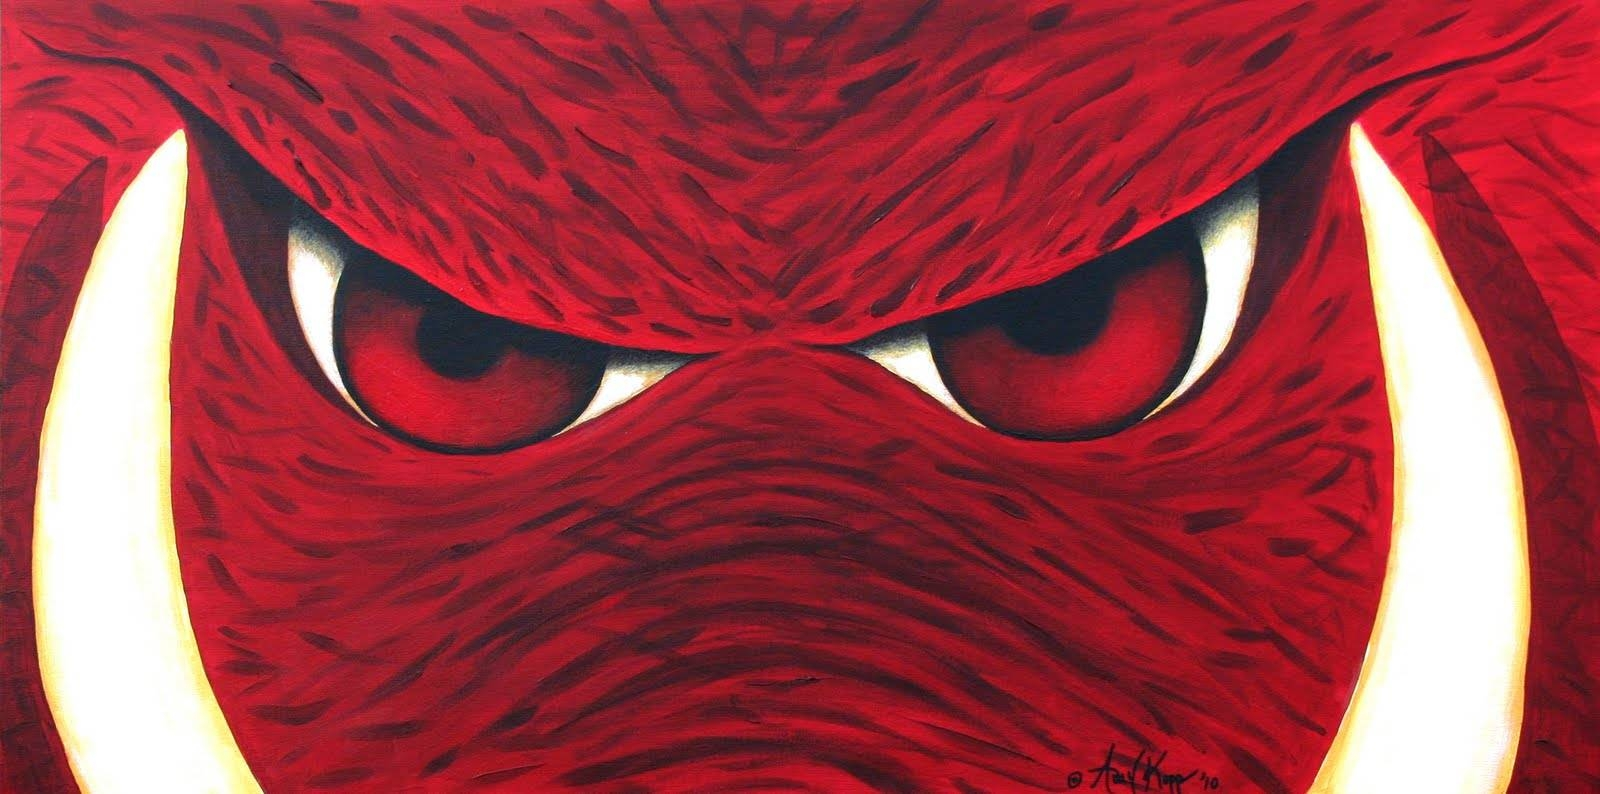 My Journey Creating: Arkansas Razorbacks Wall Art Intended For Recent Razorback Wall Art (View 18 of 25)